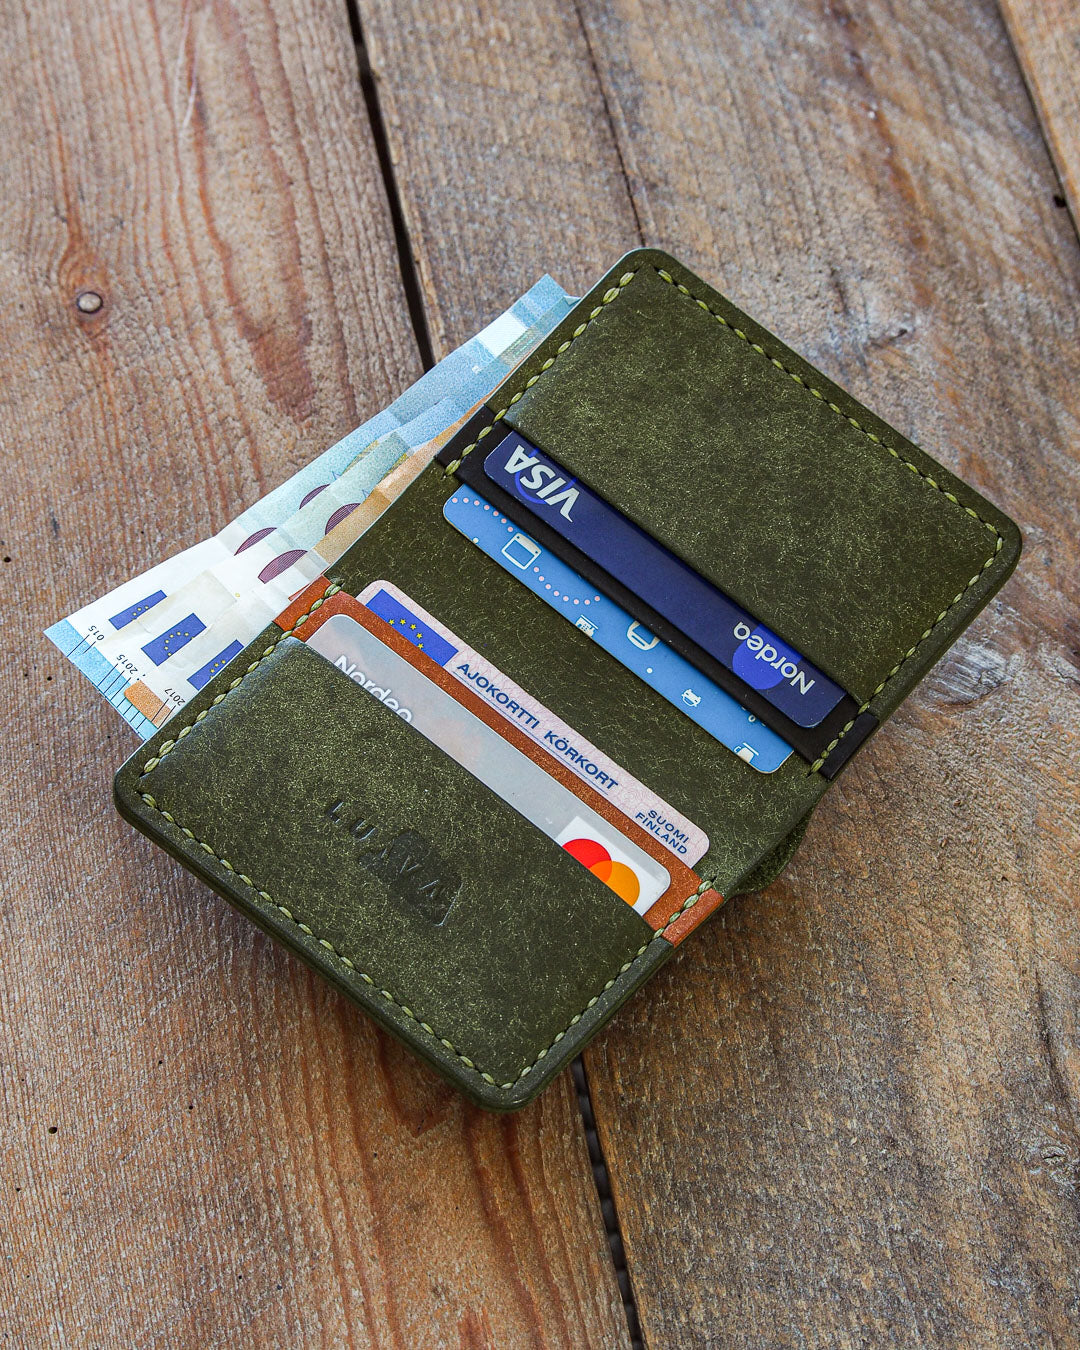 Luava handmade leather wallet NERO card holder cardholder handcrafted pueblo olive black cognac front open in use